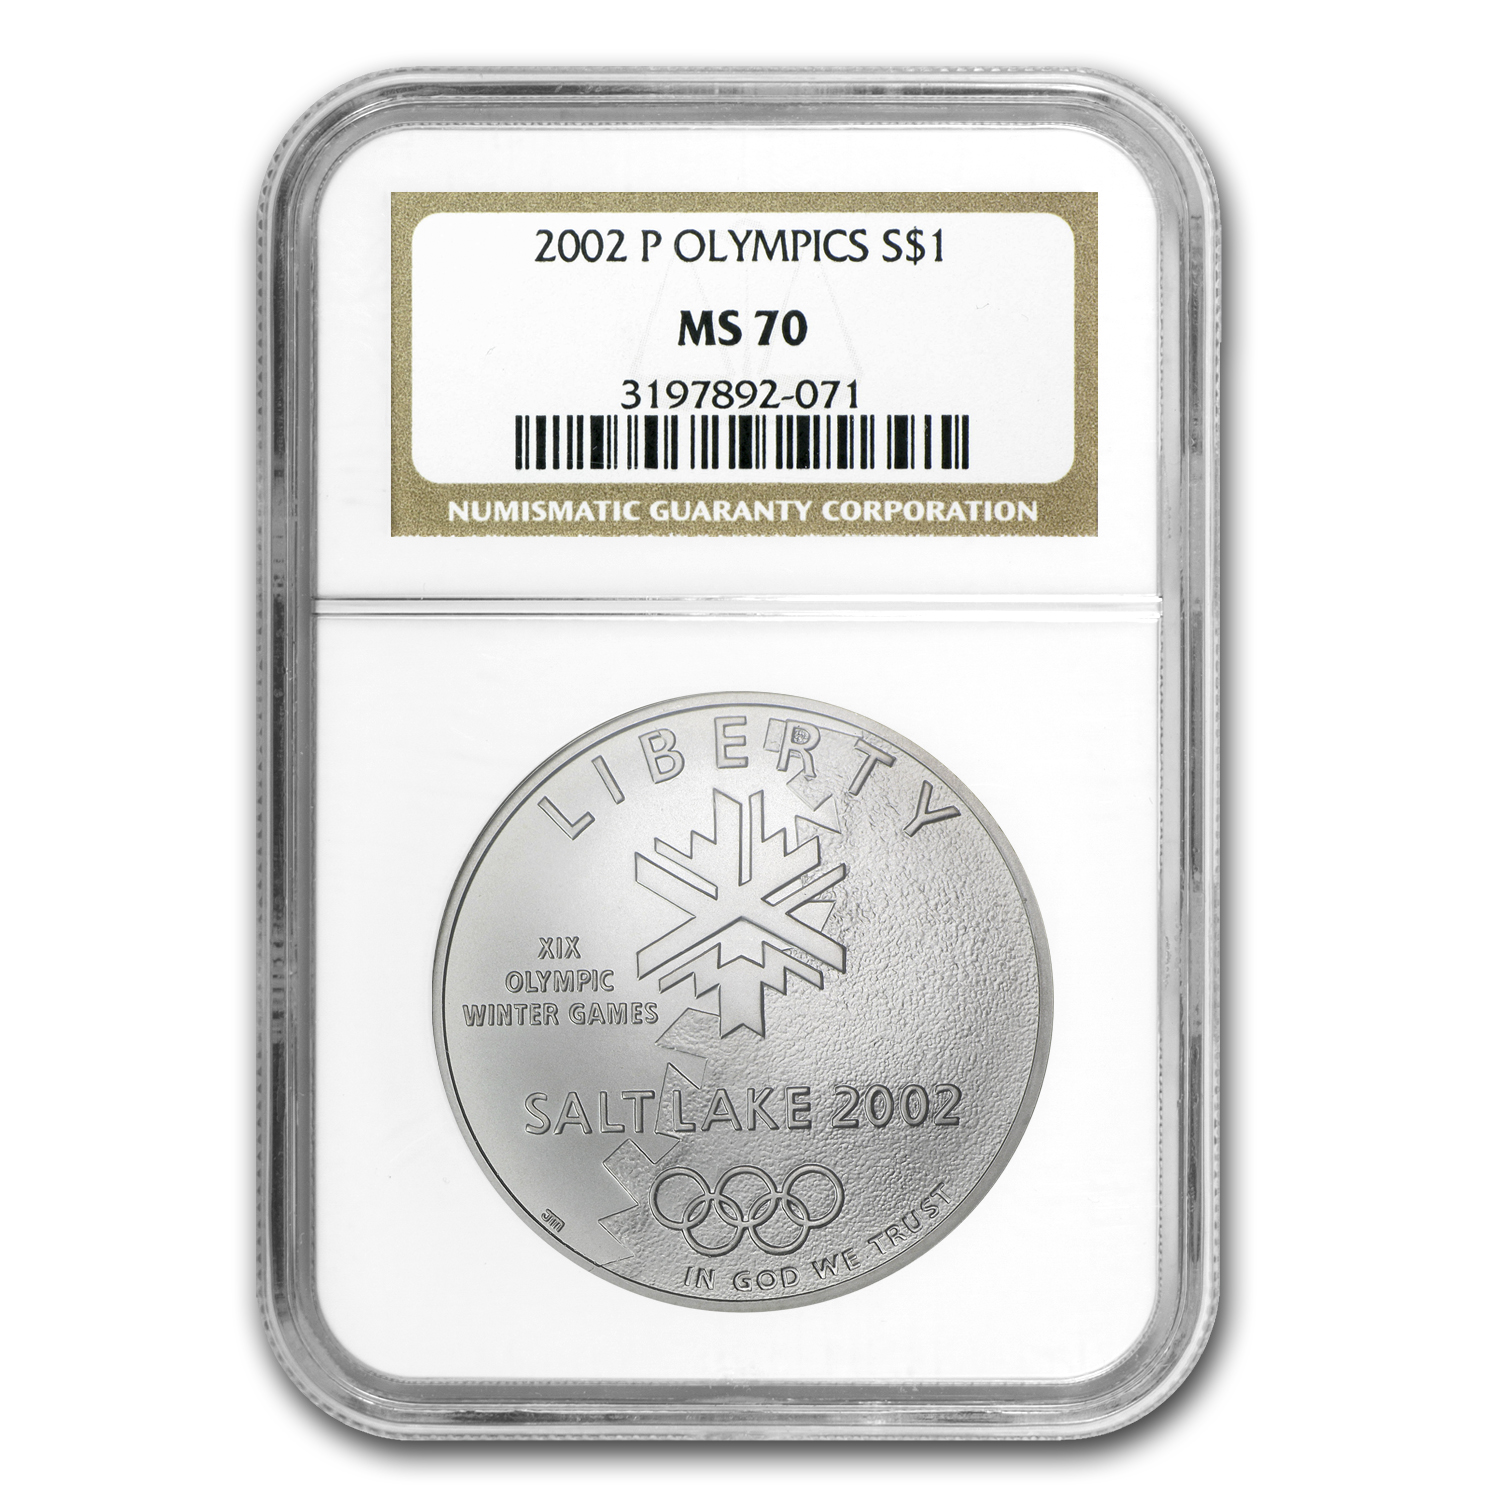 2002-P Olympic Winter Games $1 Silver Commemorative - MS-70 NGC